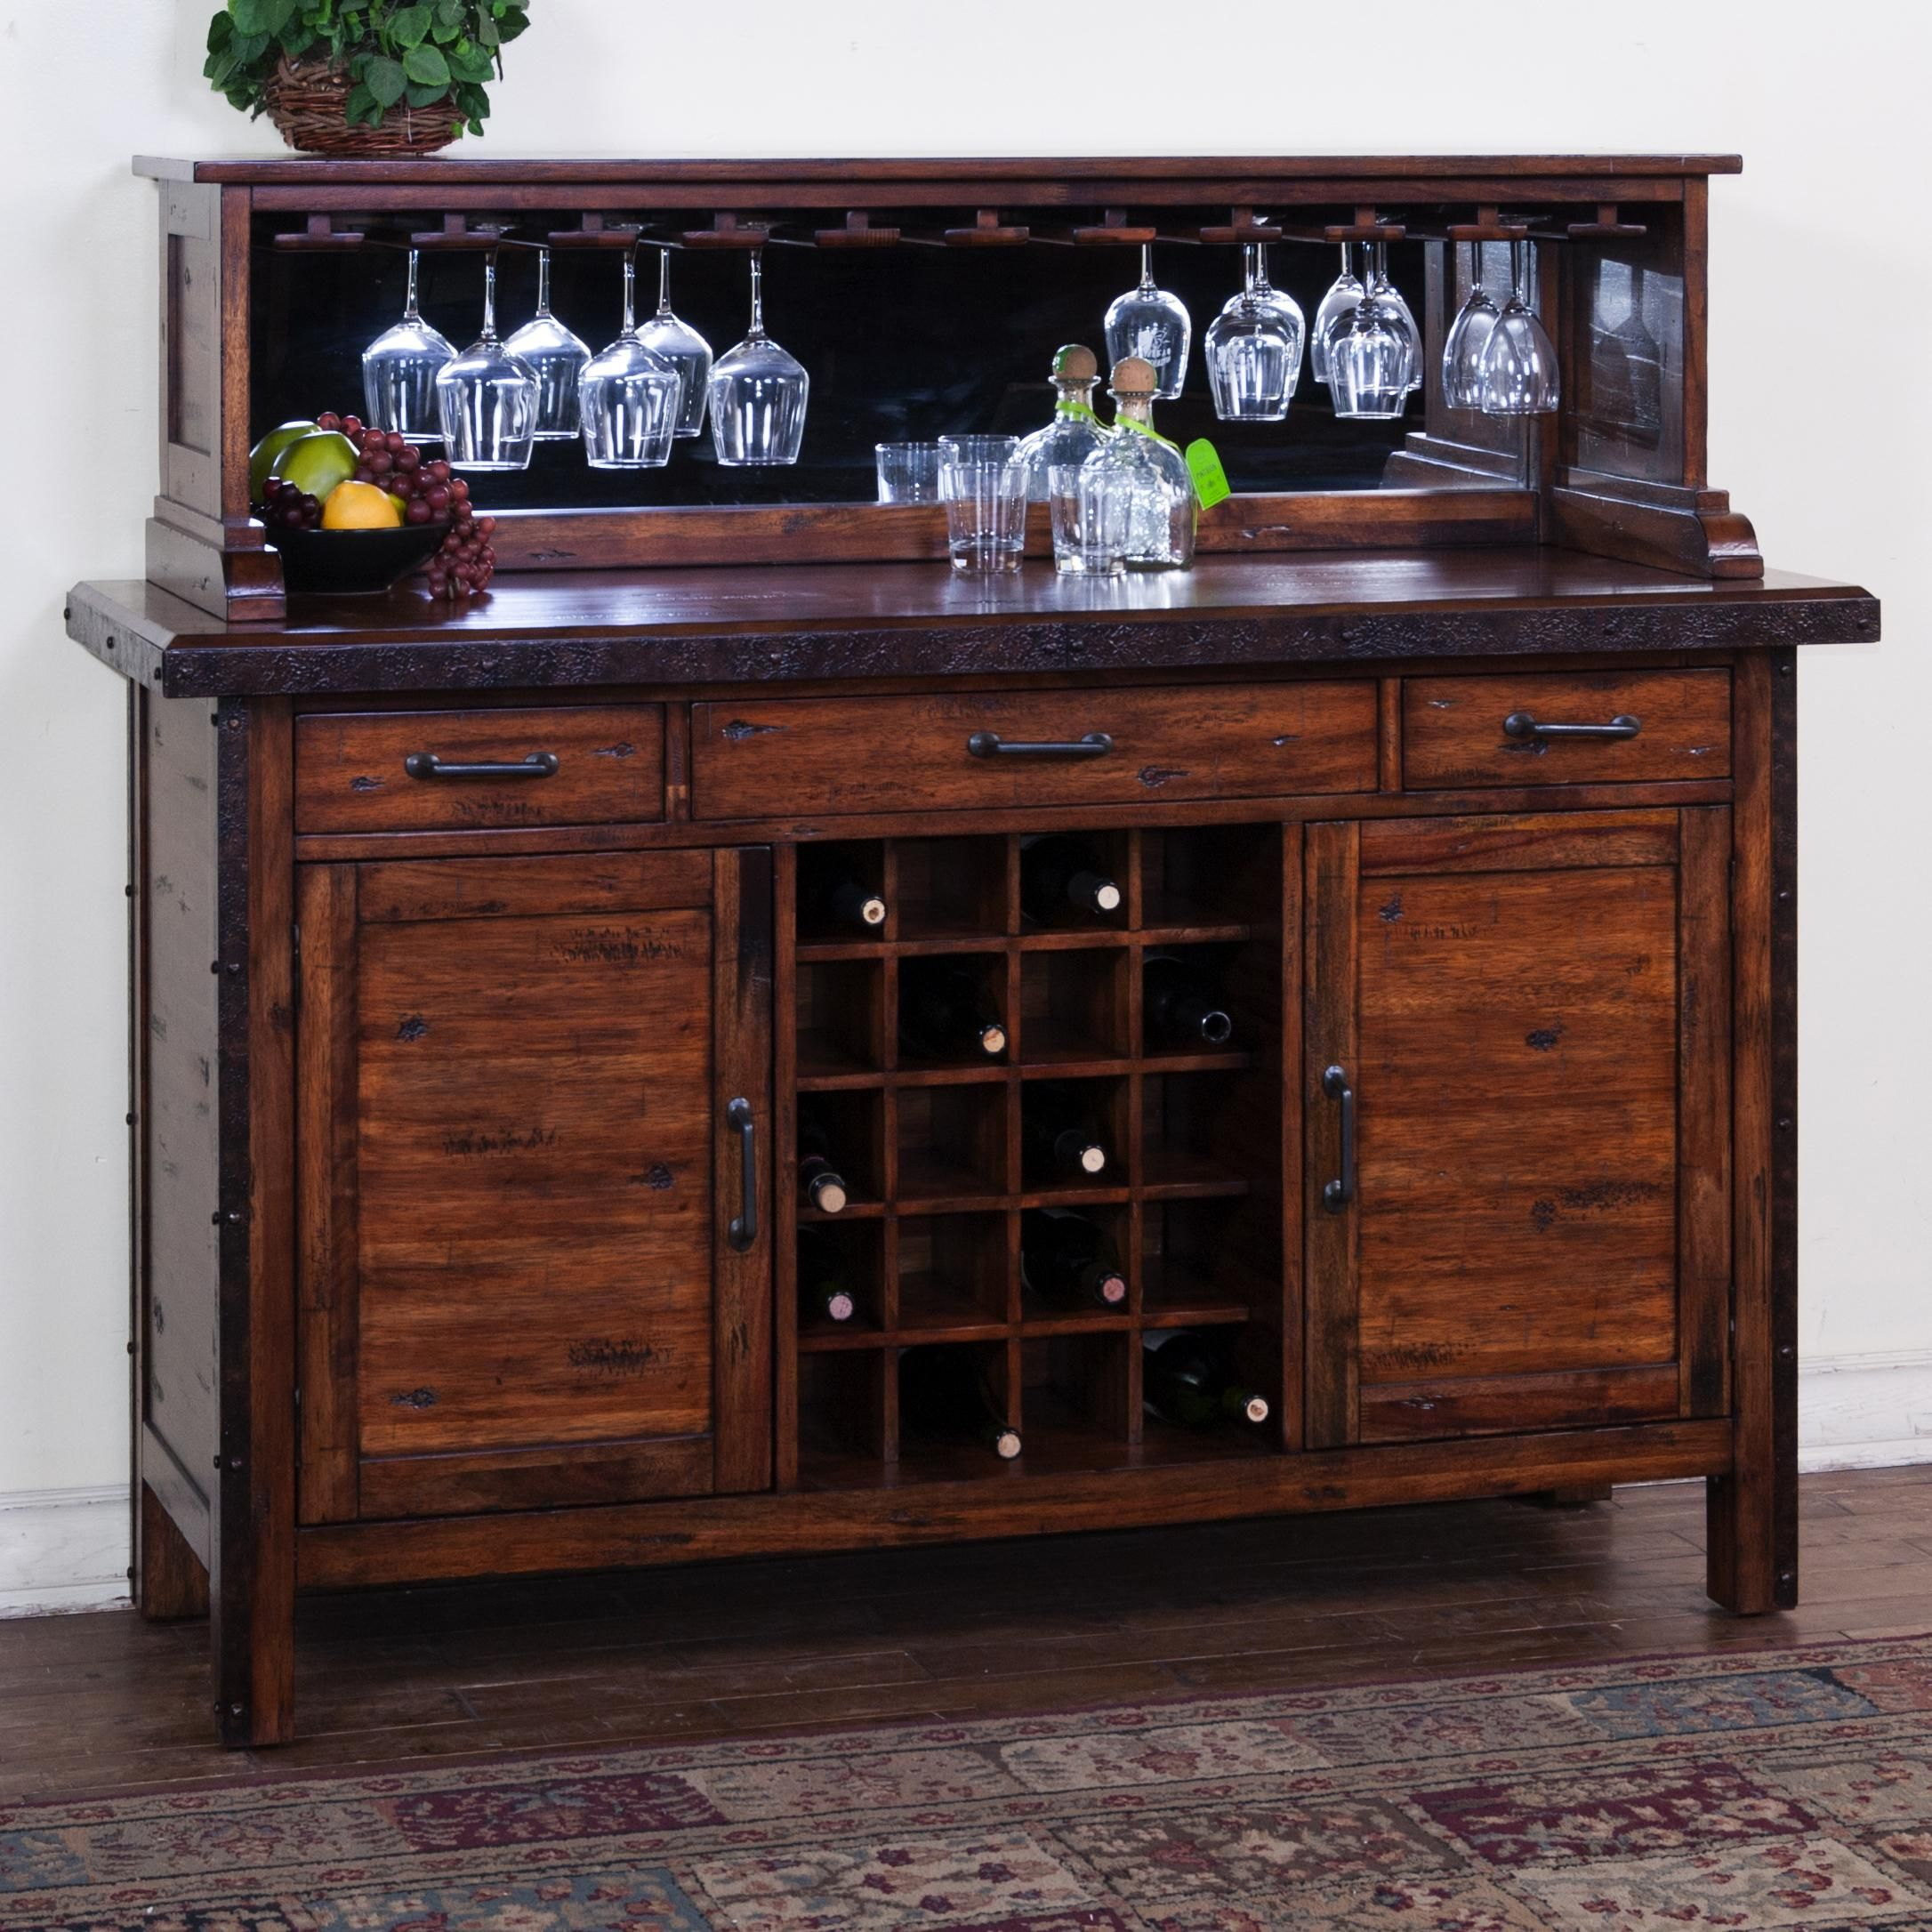 Rustic Server with Wine Rack